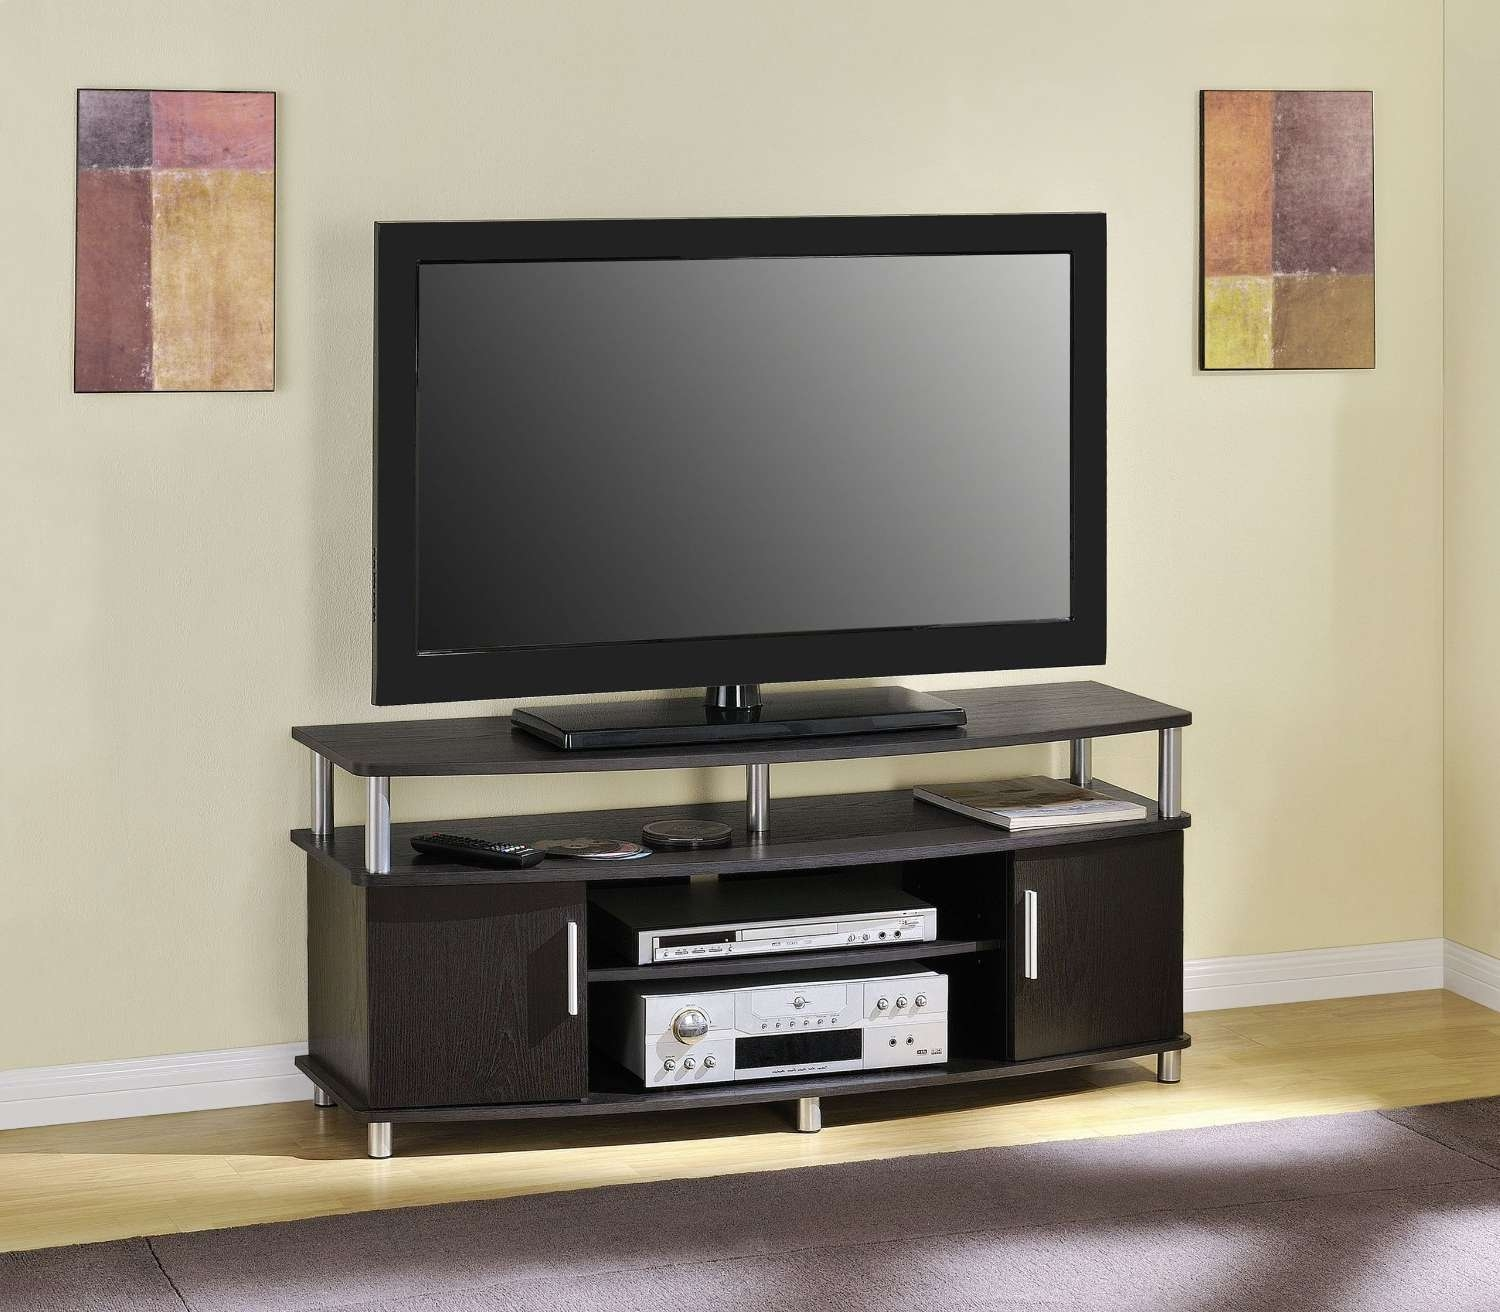 Tv Stands: 7 Best Selling Flat Screen Tv Stands 2017 Pertaining To Contemporary Tv Stands For Flat Screens (View 6 of 20)